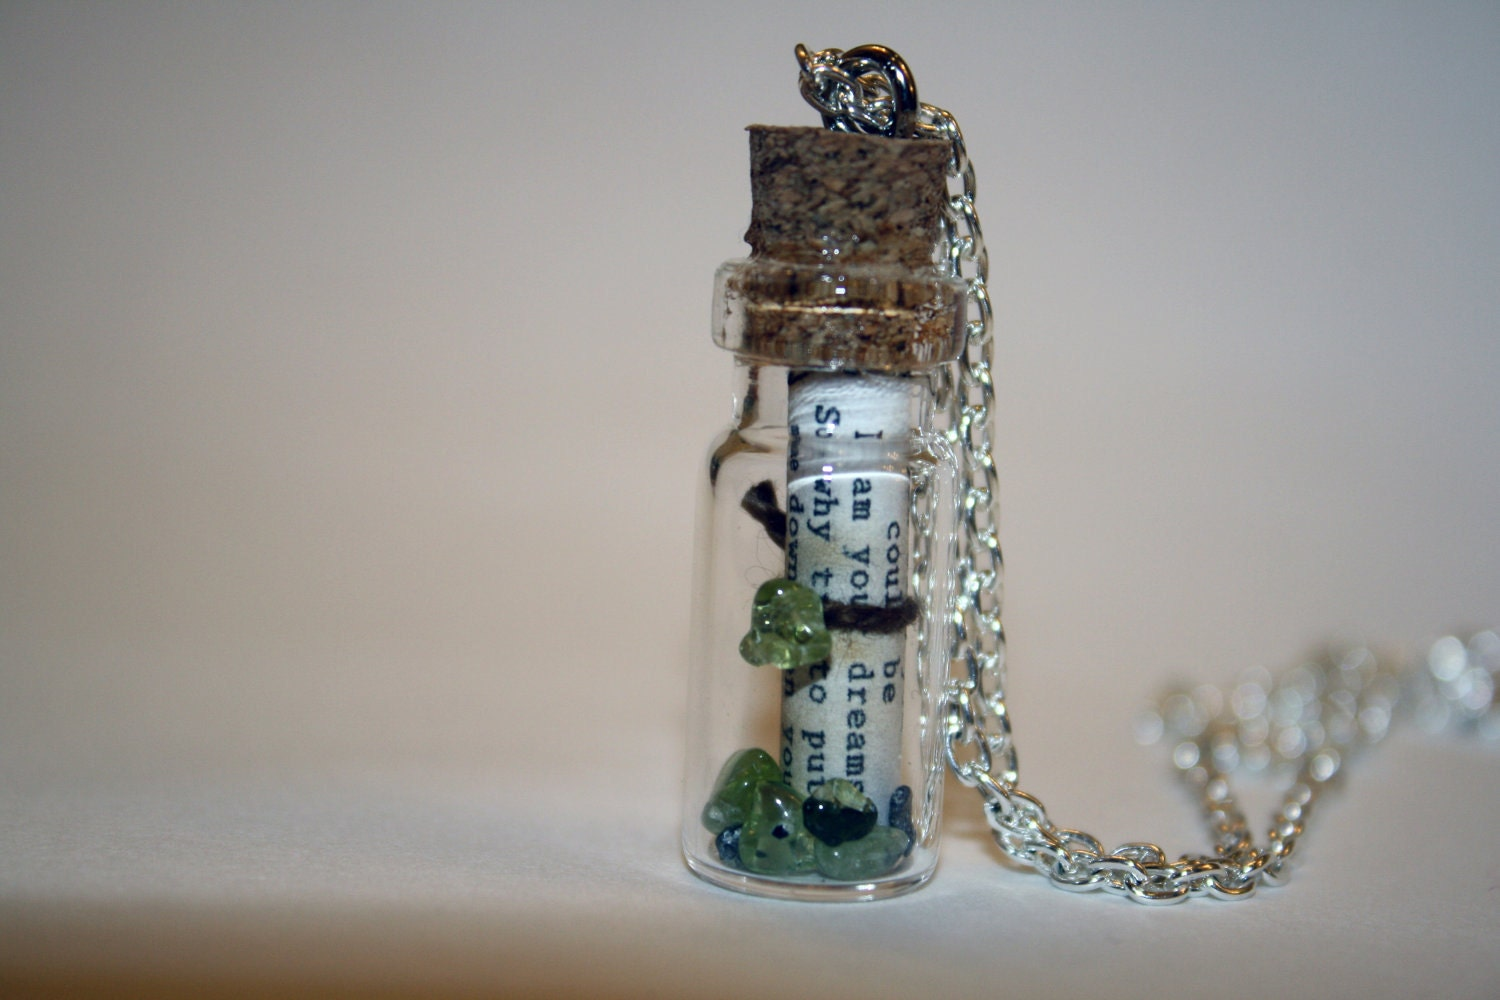 Song Lyrics in a bottle necklace